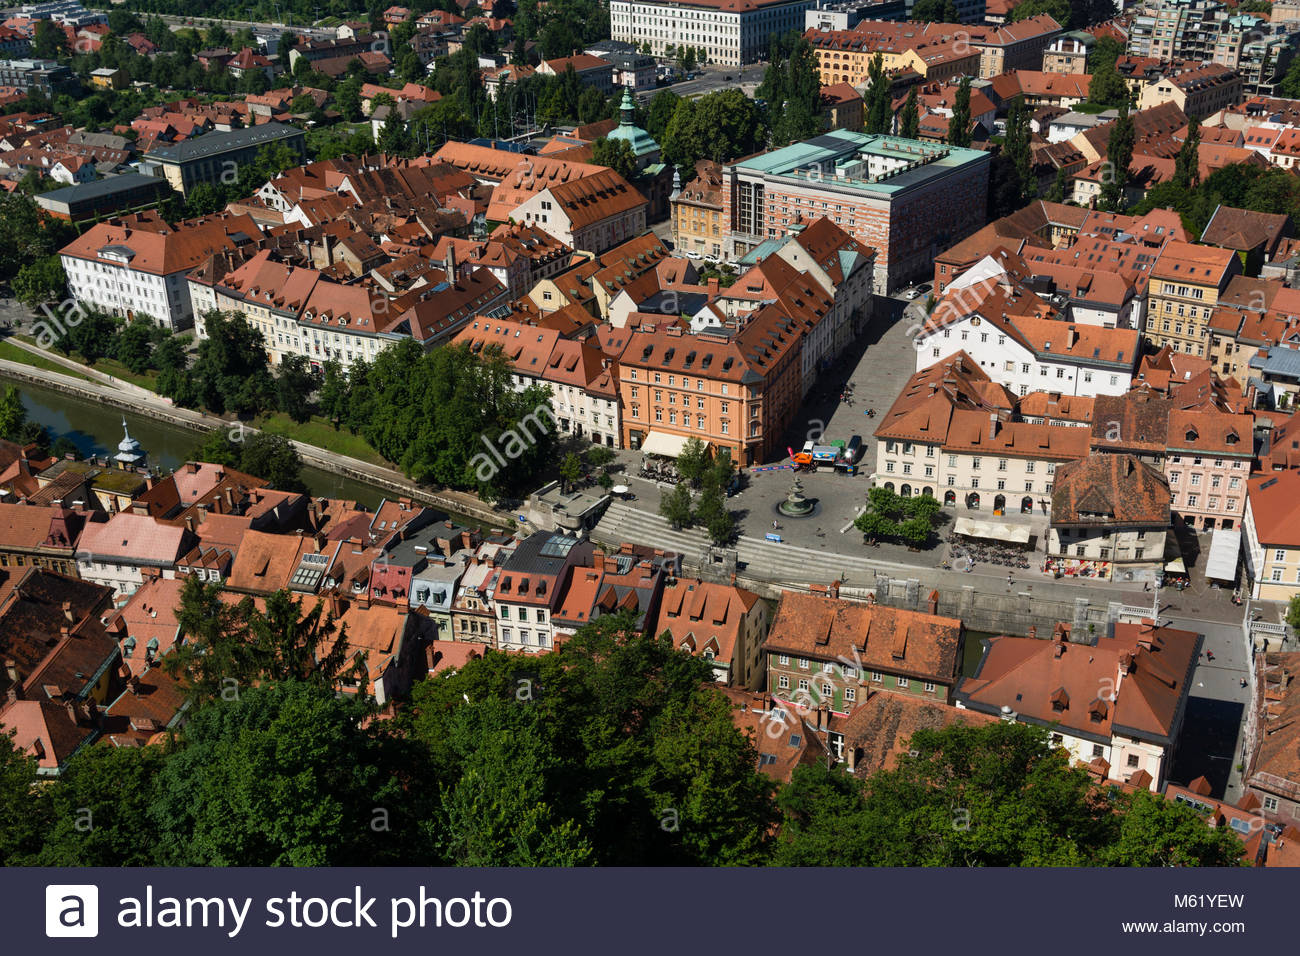 A view of the old town from the Castle of Ljubljana. - Stock Image